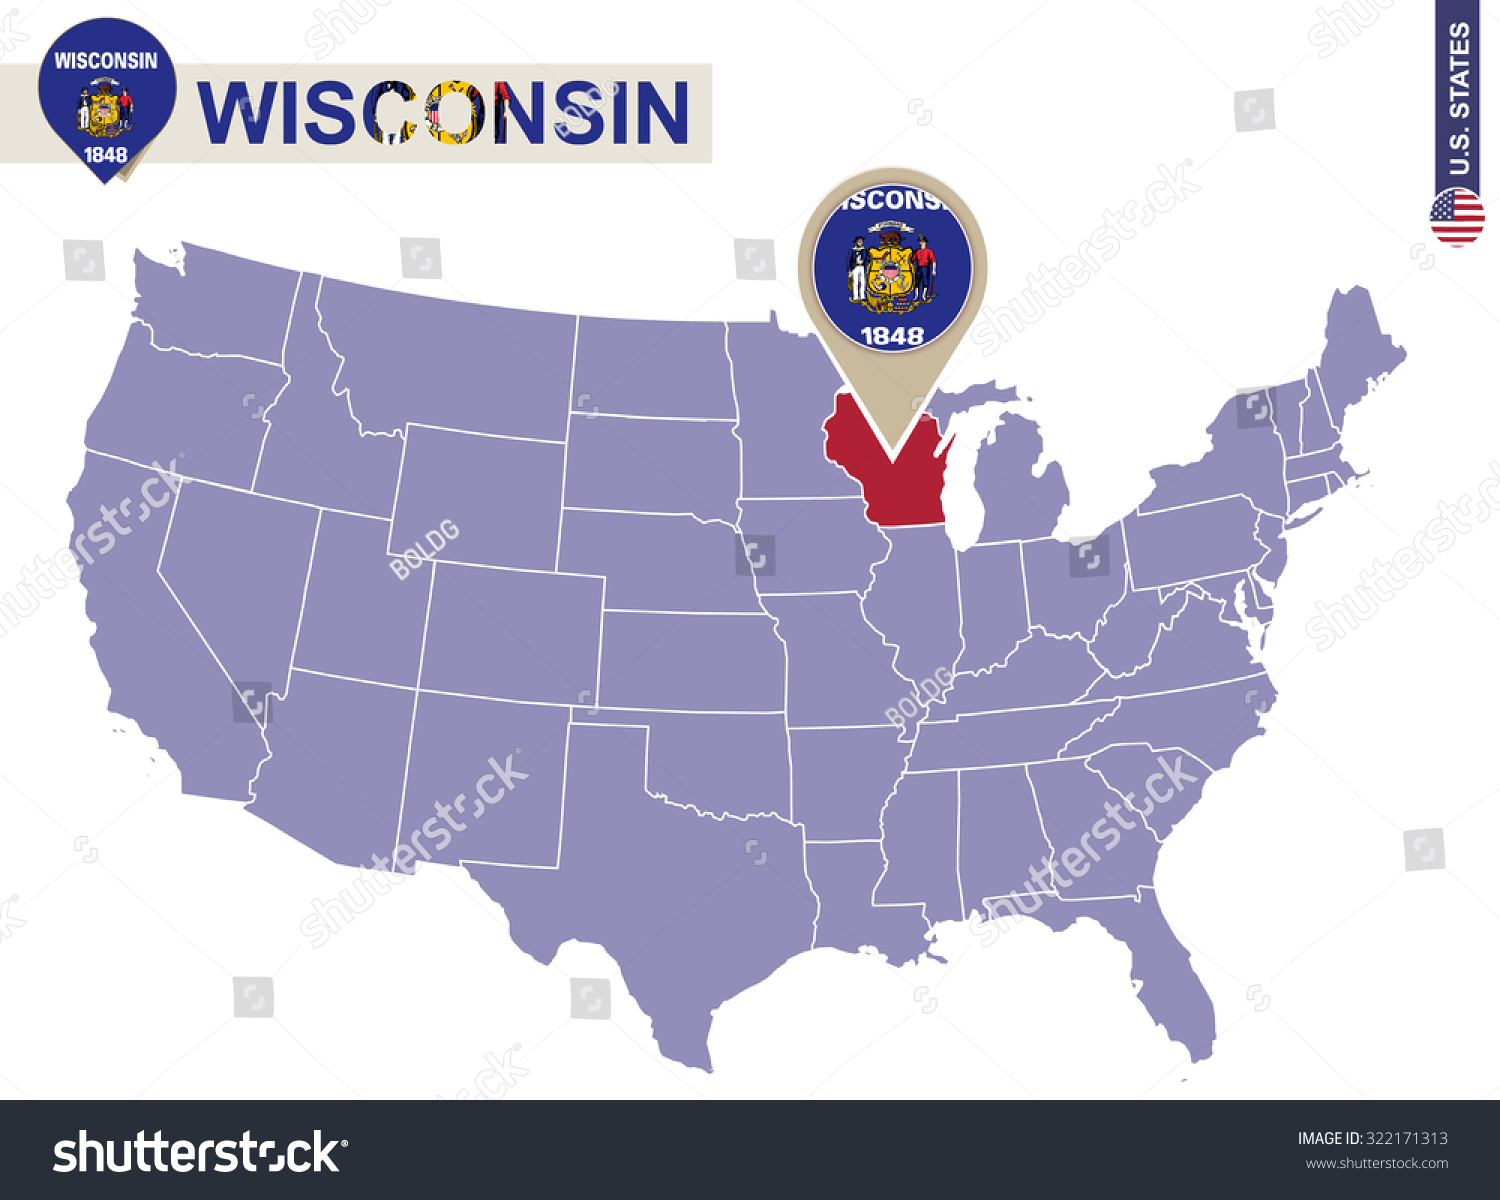 Wisconsin State On Usa Map Wisconsin Stock Vector 322171313